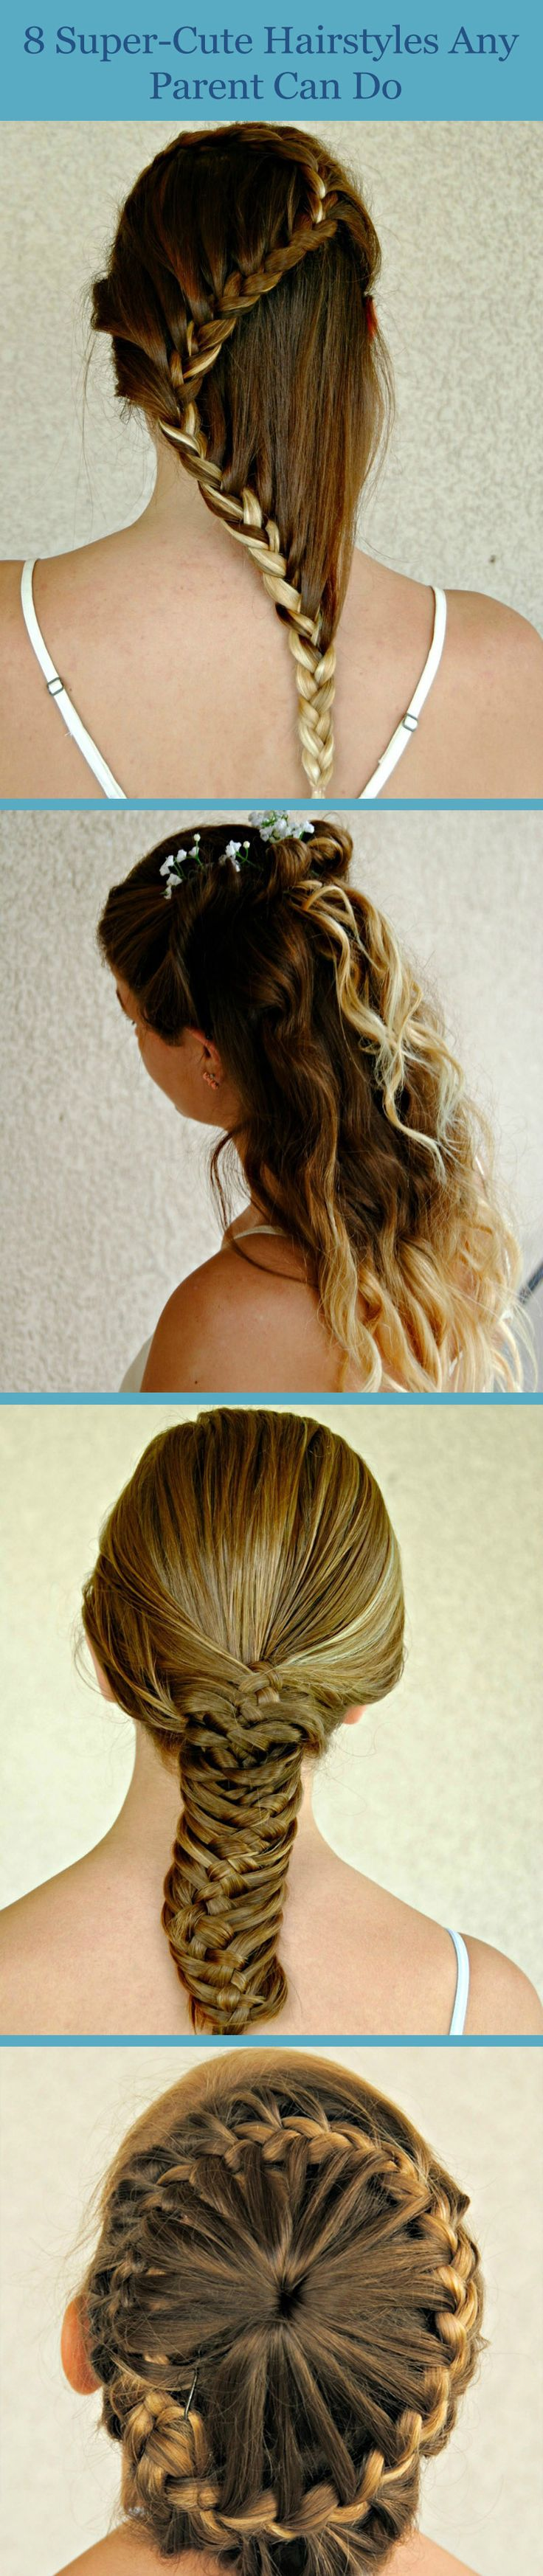 Cute easy hairstyles that kids can do - 8 Super Cute Hairstyles Any Parent Can Do Themselves Easy Kid